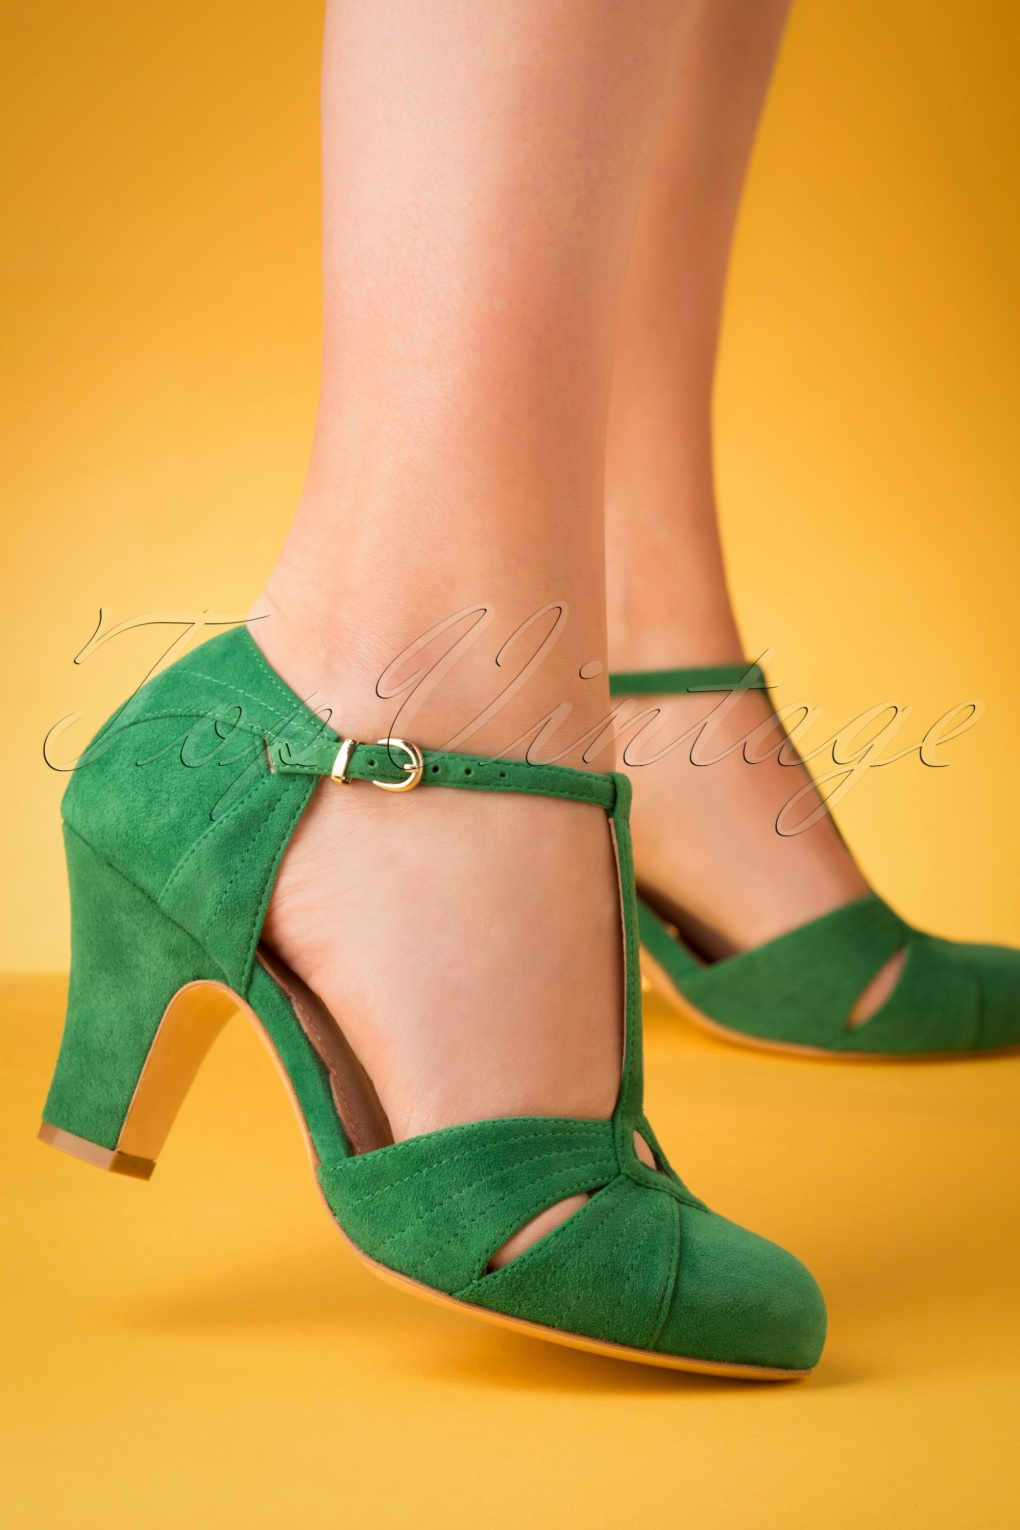 Vintage 1920s Shoe Styles 20s Hepworth Suede T-Strap Pumps in Green £150.35 AT vintagedancer.com